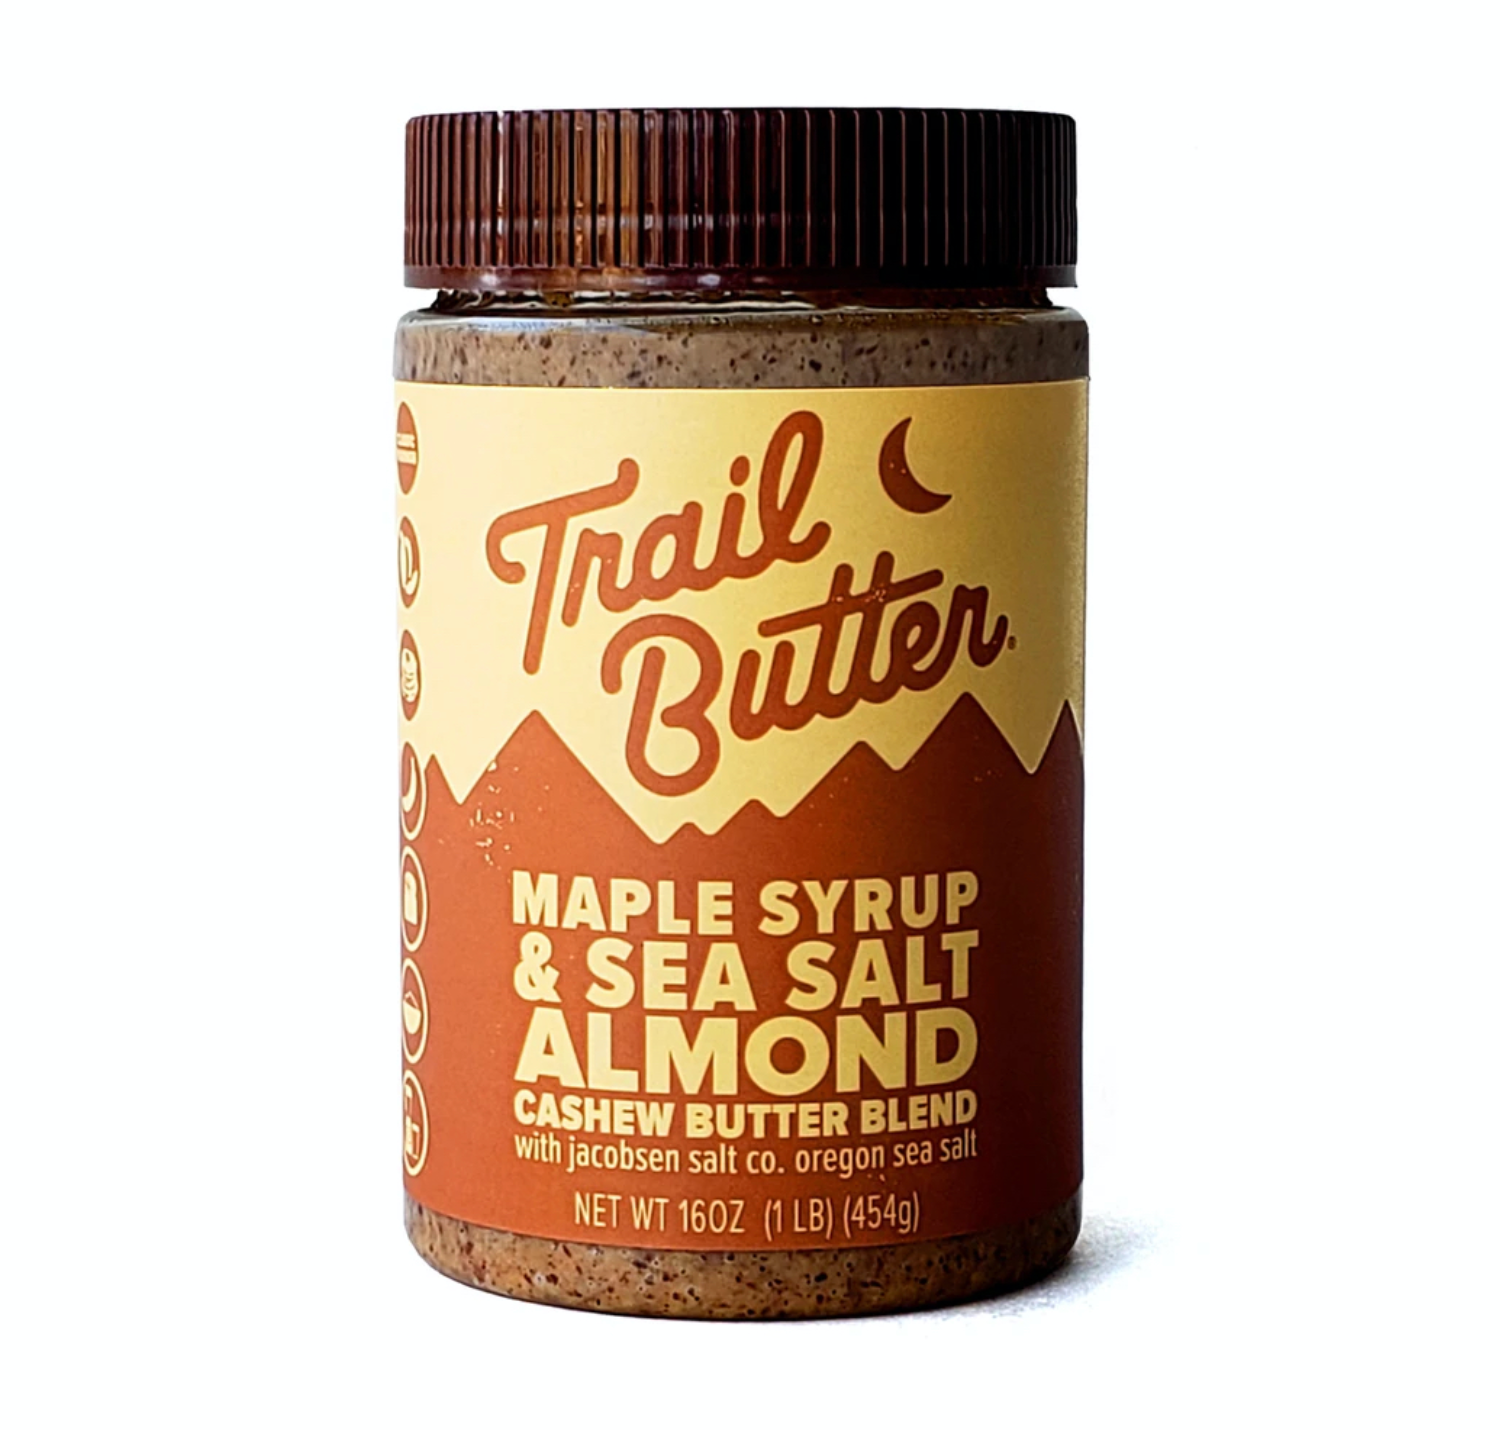 Trail Butter - Jars